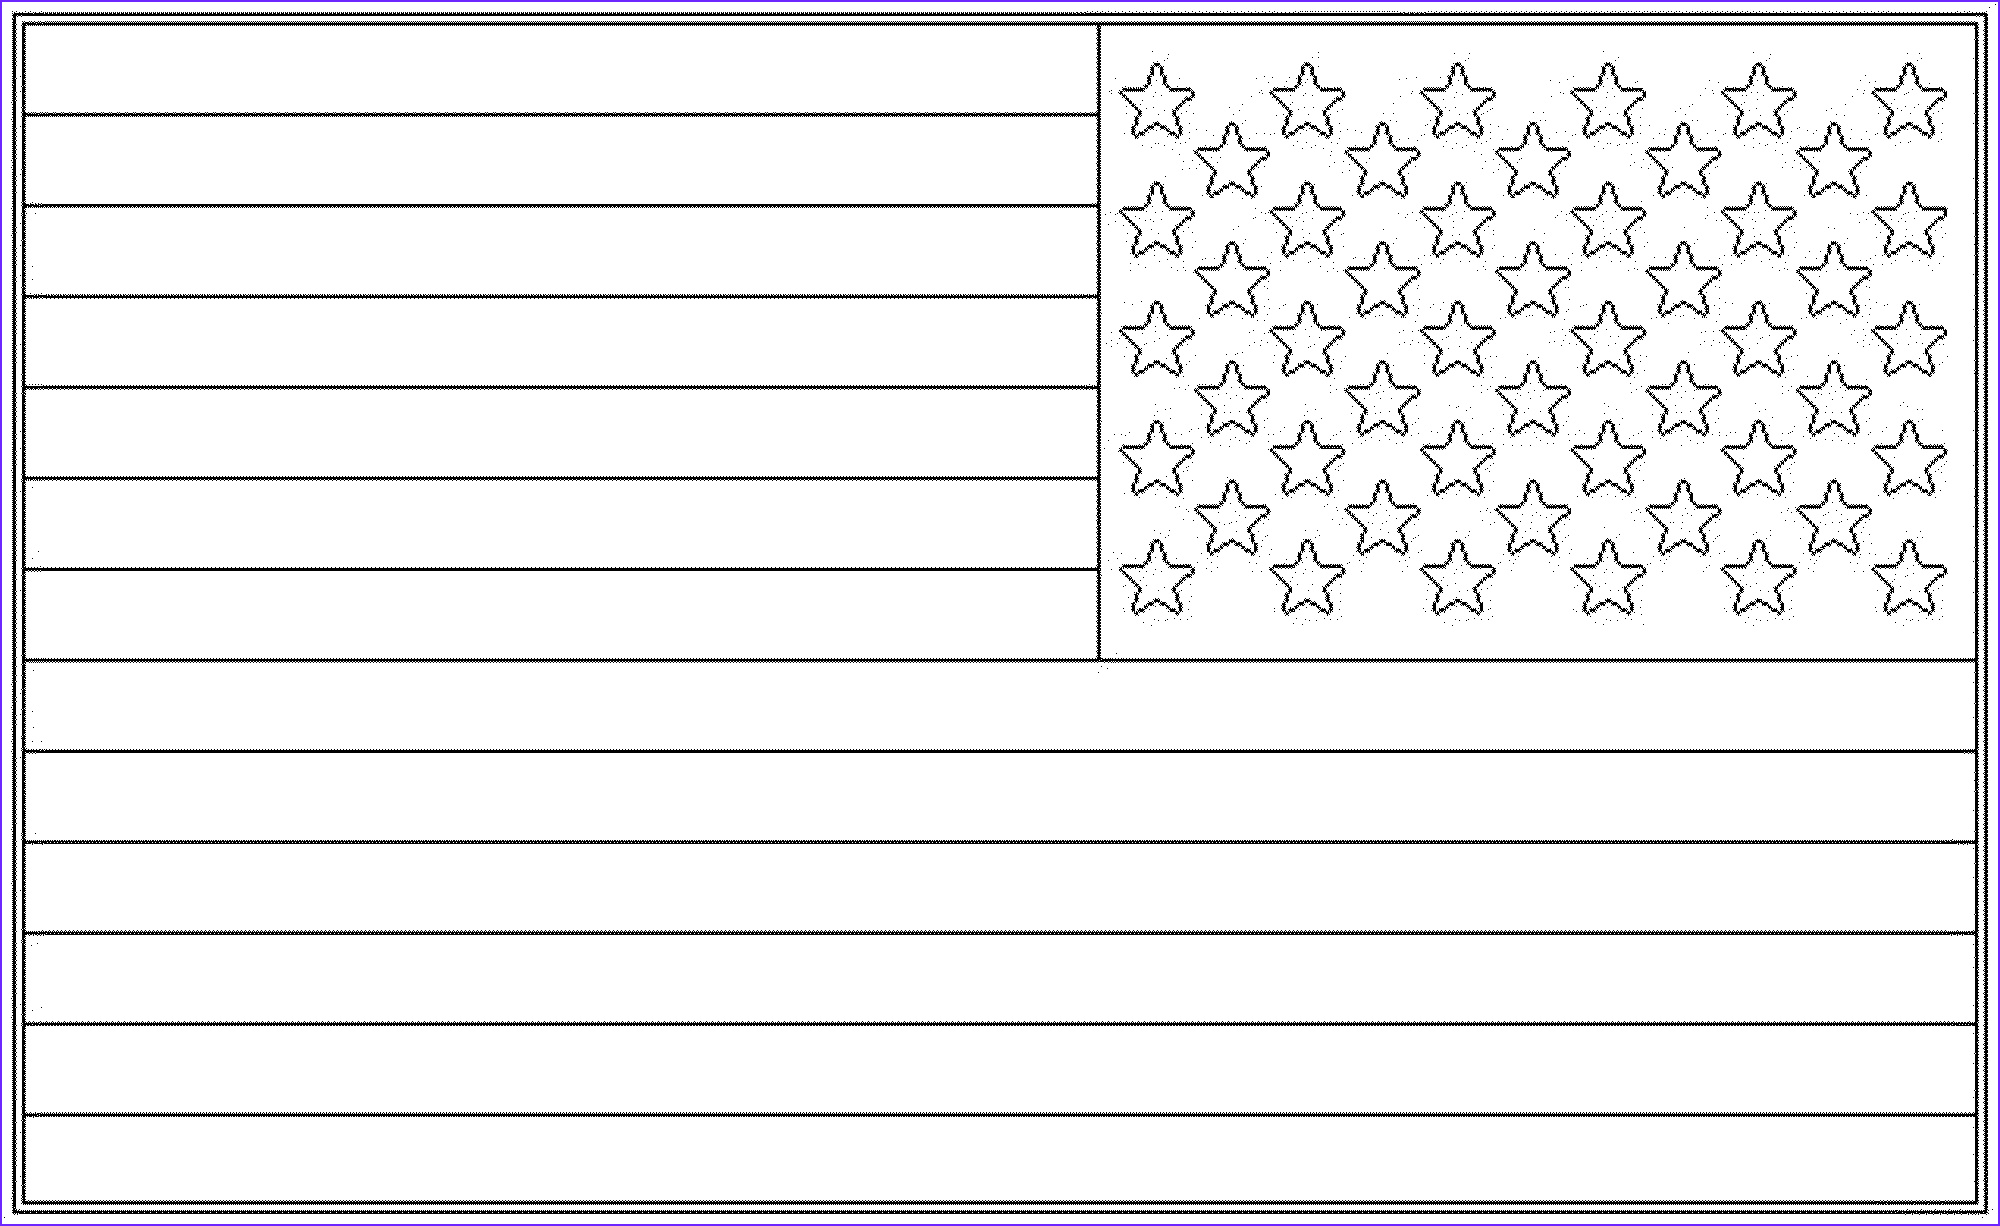 American Flag Coloring Page Beautiful Images American Flag Coloring Page for the Love Of the Country